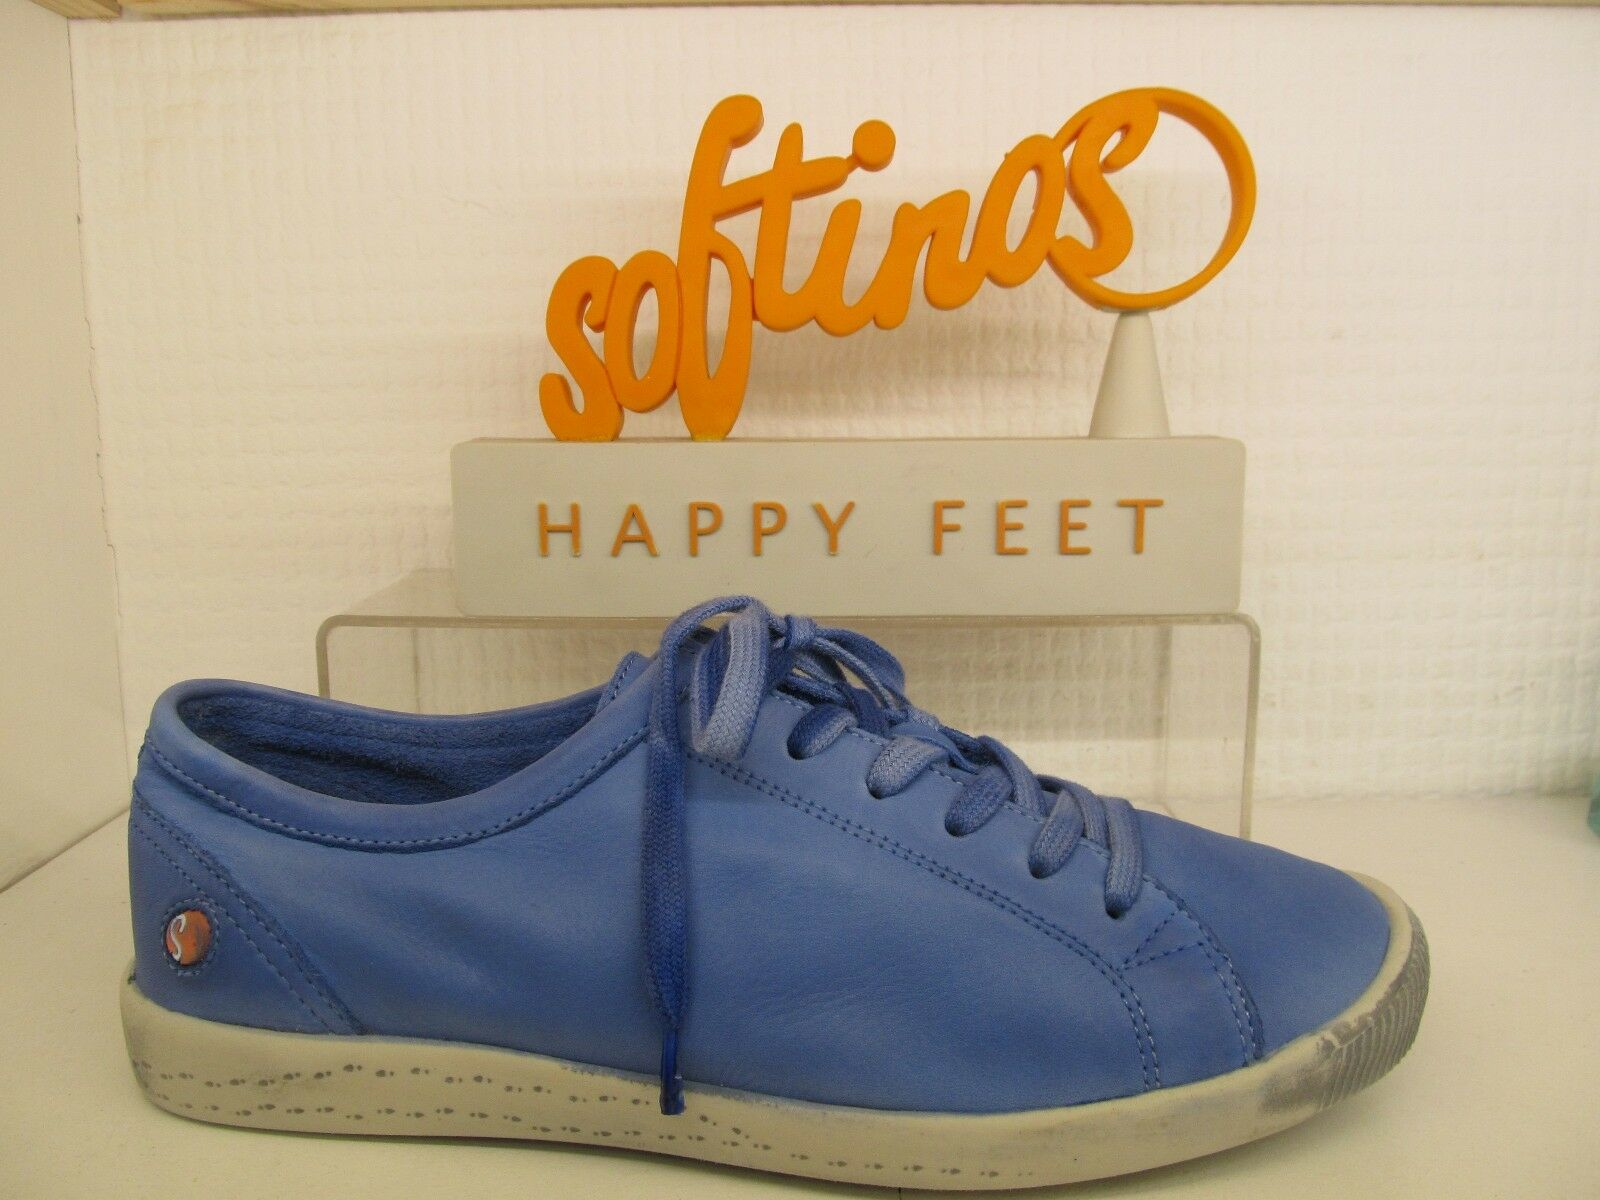 Softinos Happy Feet Isla Morbido Lavato Lavender Blue Pelle Stringati Pompa Scarpa